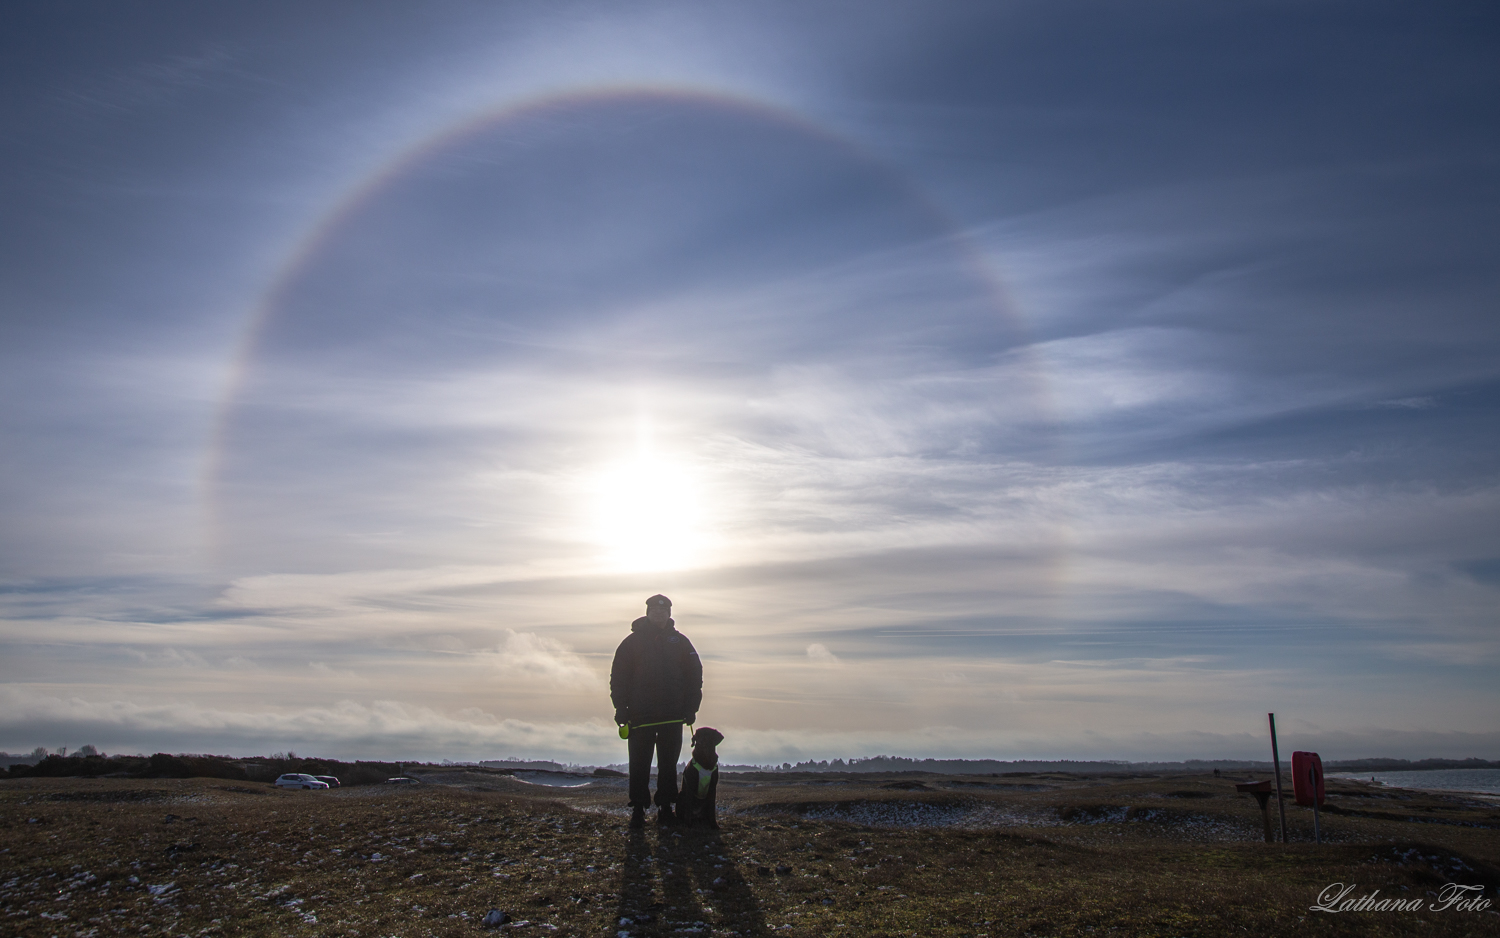 190119 Halo over Vesterlyng